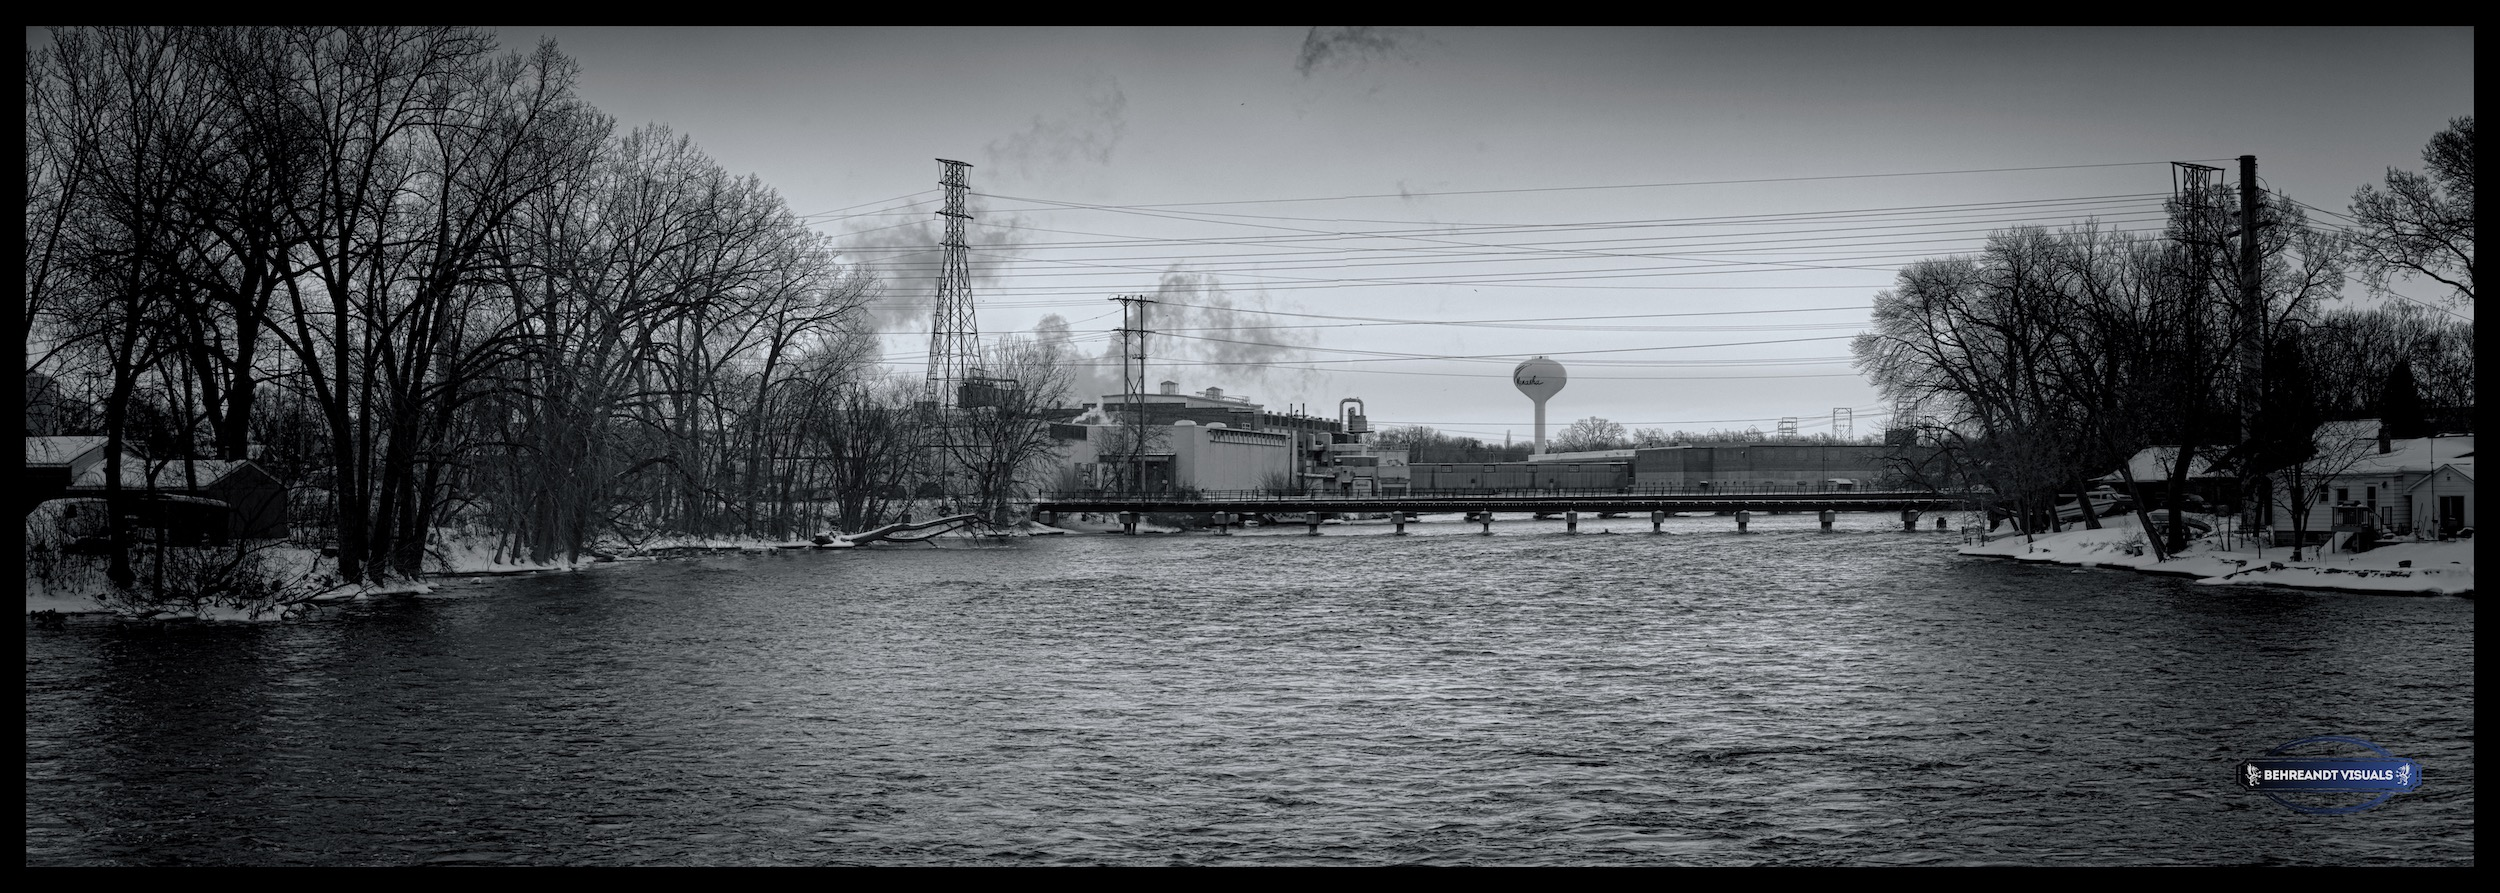 View of industrial plants on the Fox River, Menasha, Wisconsin